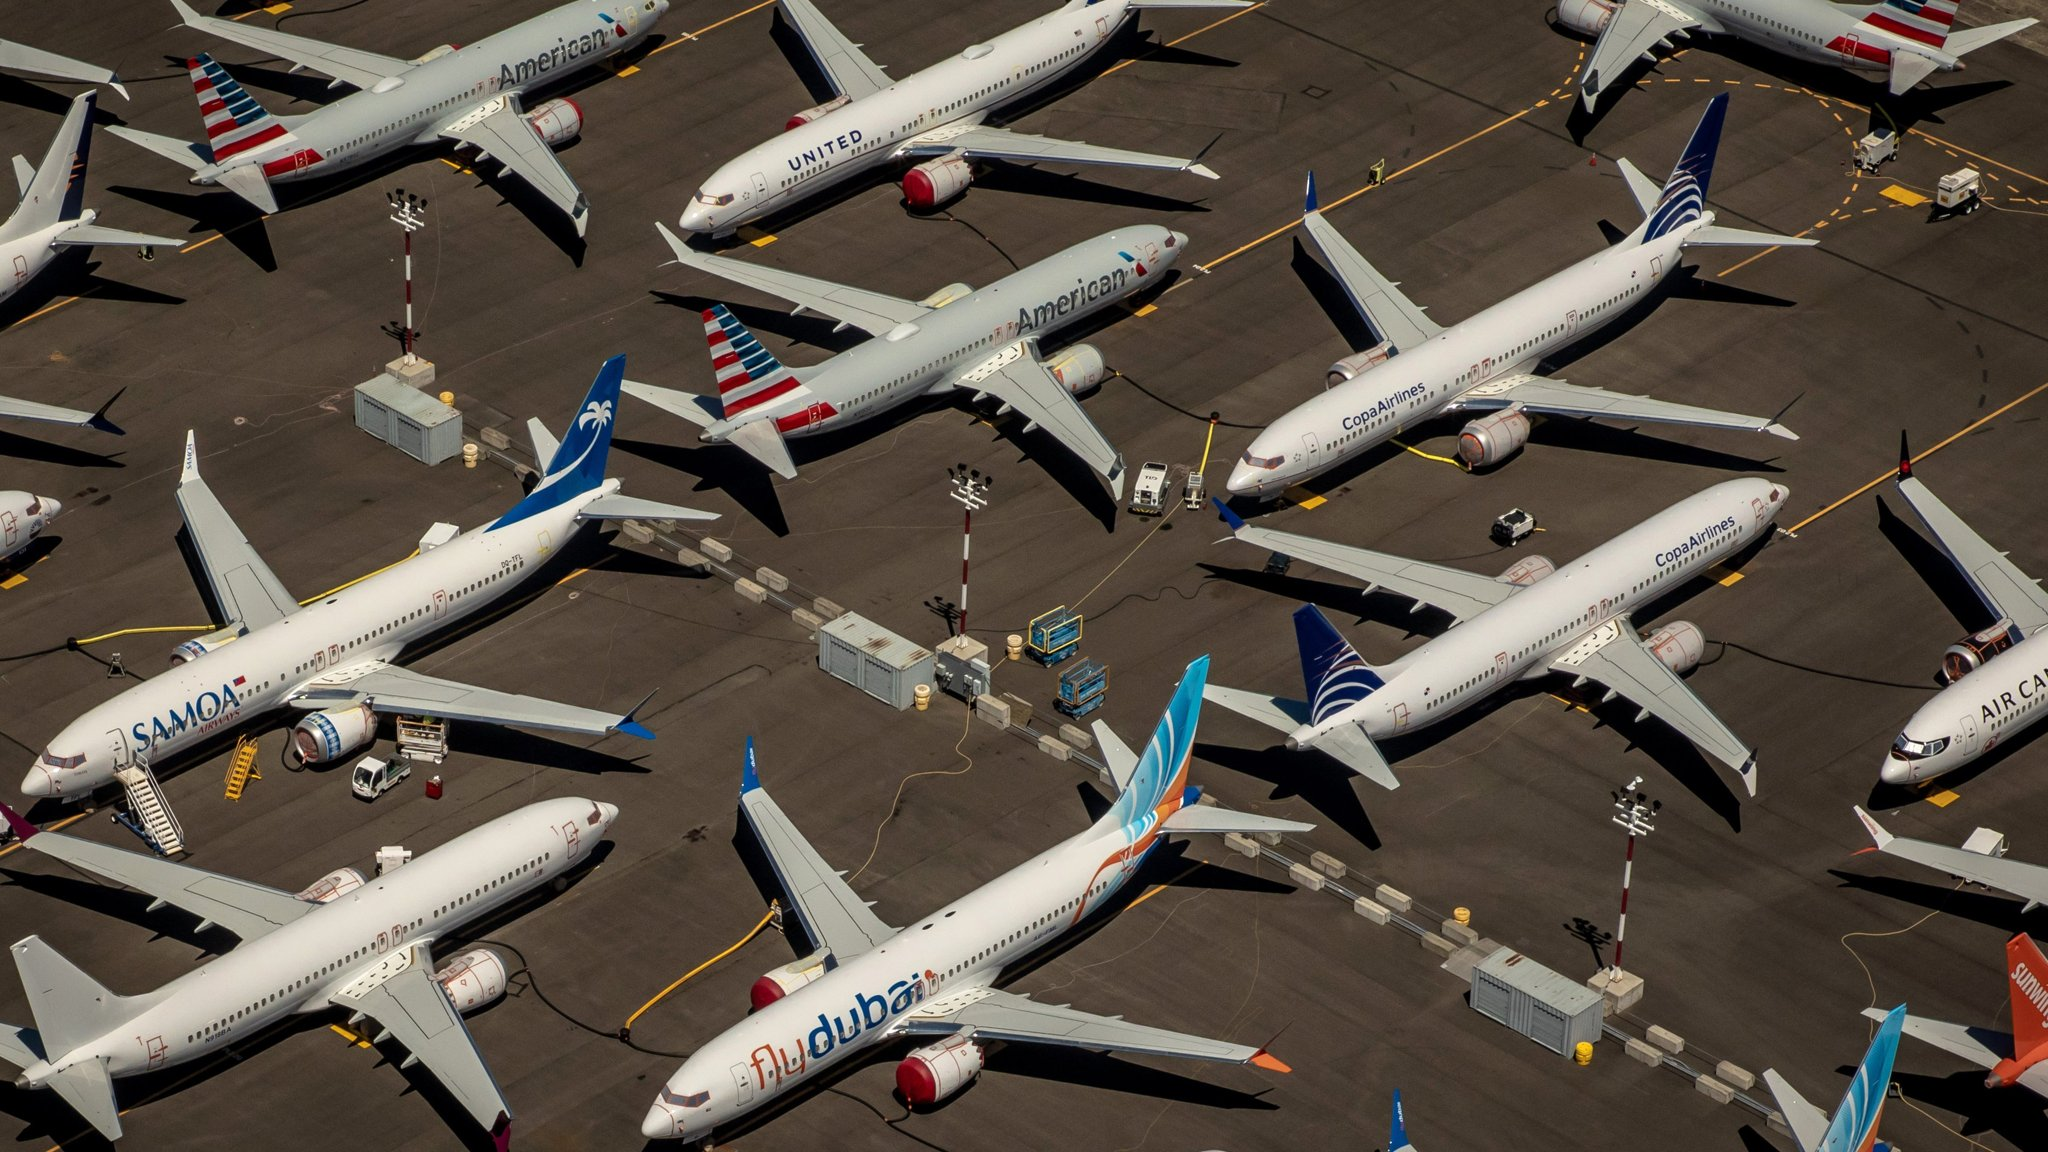 Boeing needs to come up with a Plan B for grounded Max jets